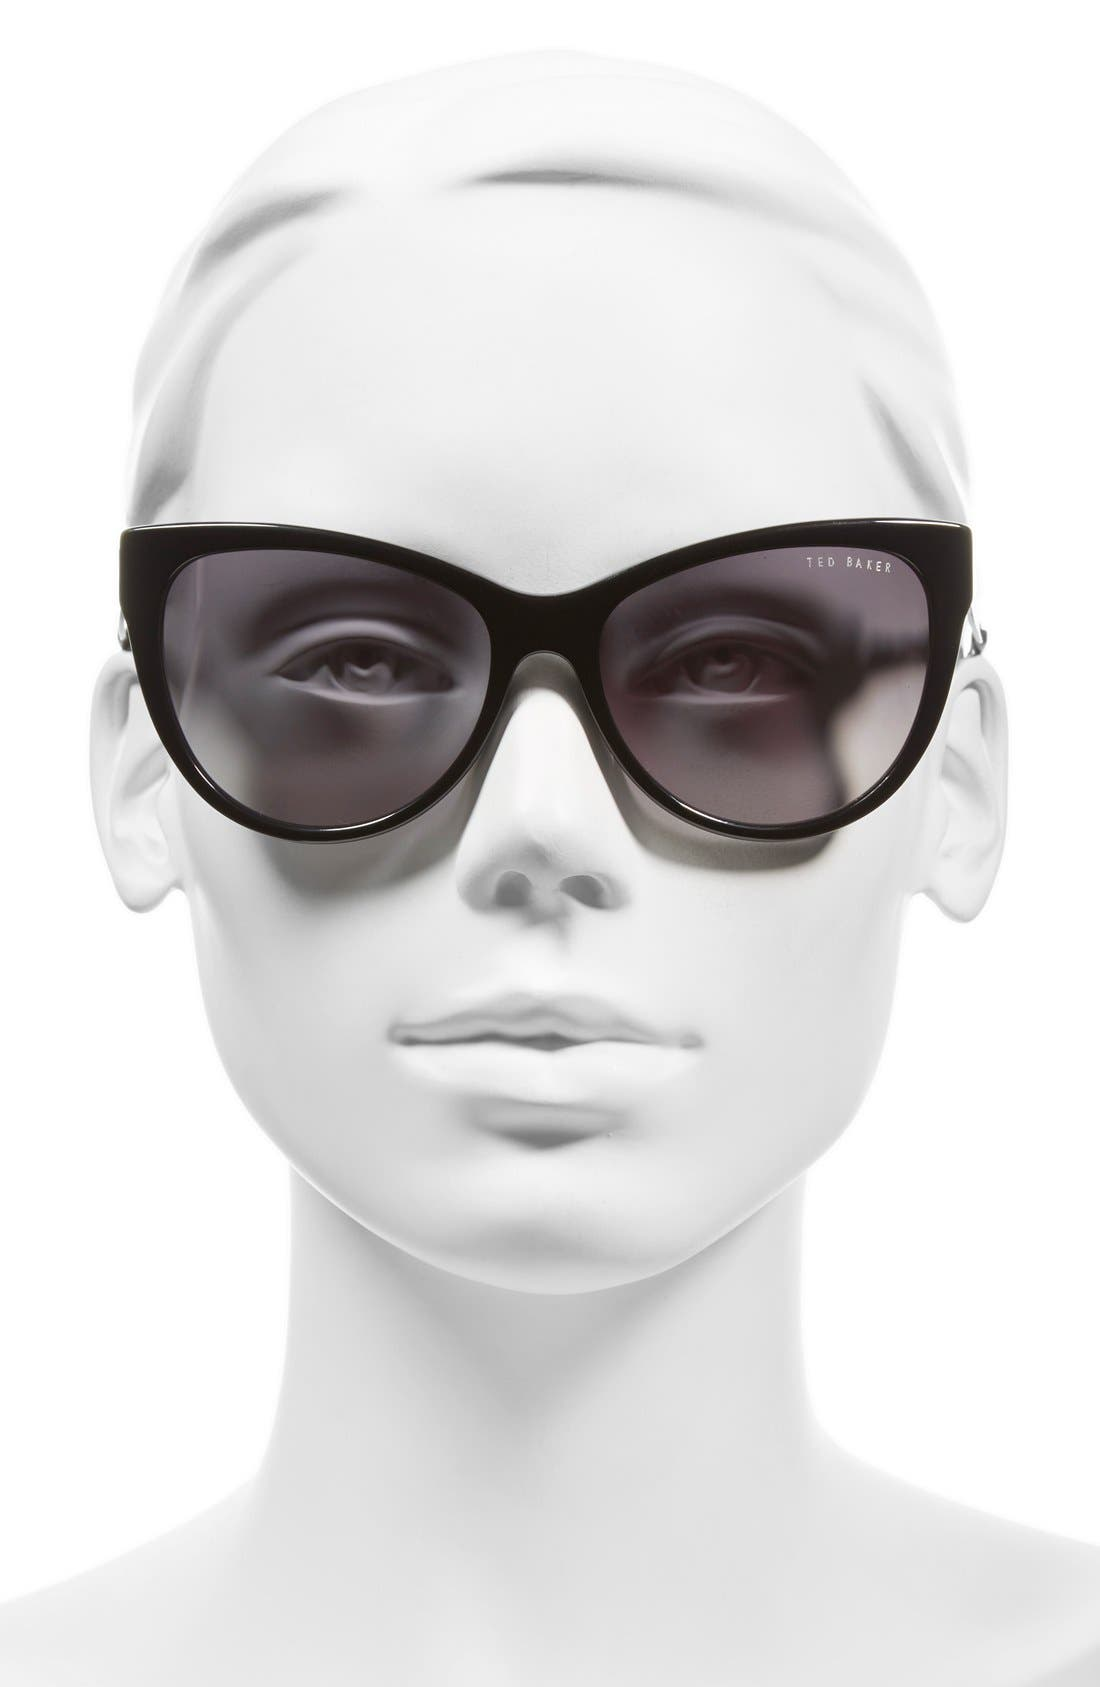 57mm Cat Eye Sunglasses,                             Alternate thumbnail 2, color,                             Black